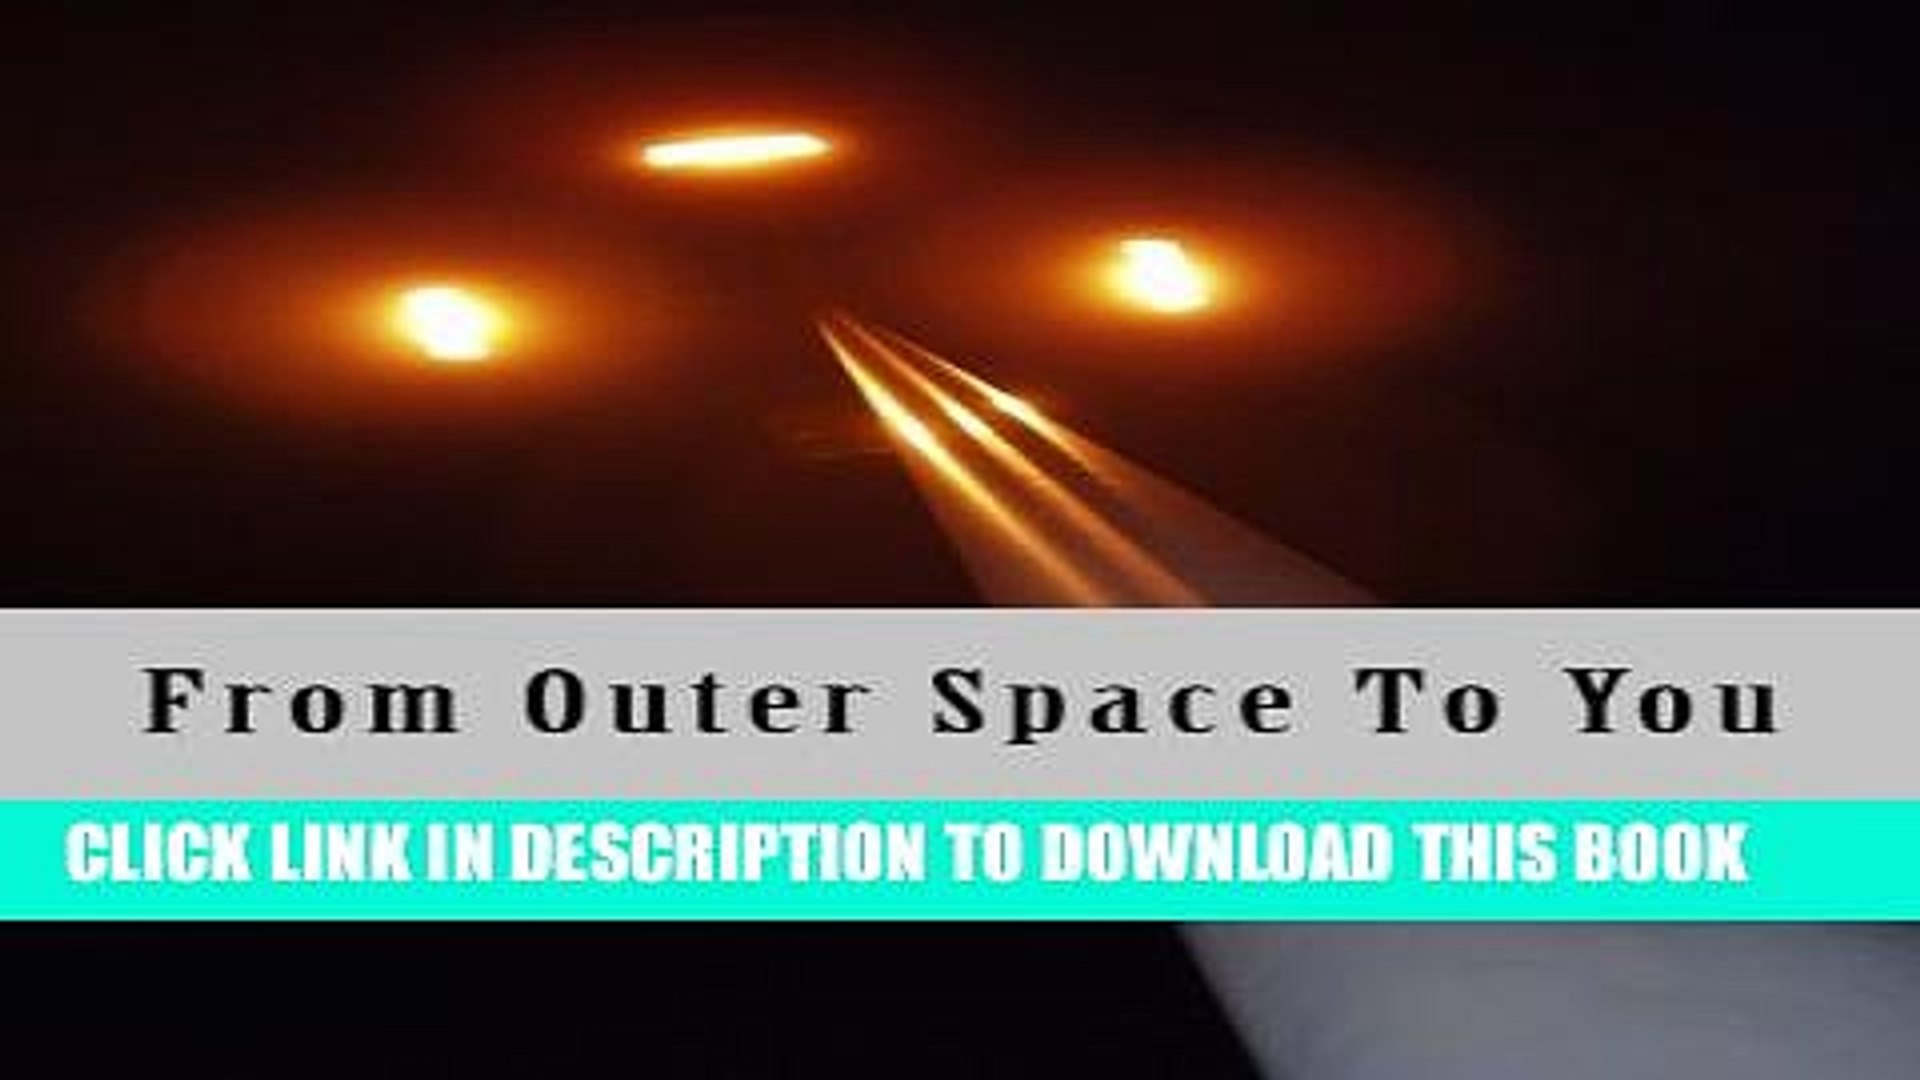 [PDF] From Outer Space To You Full Online